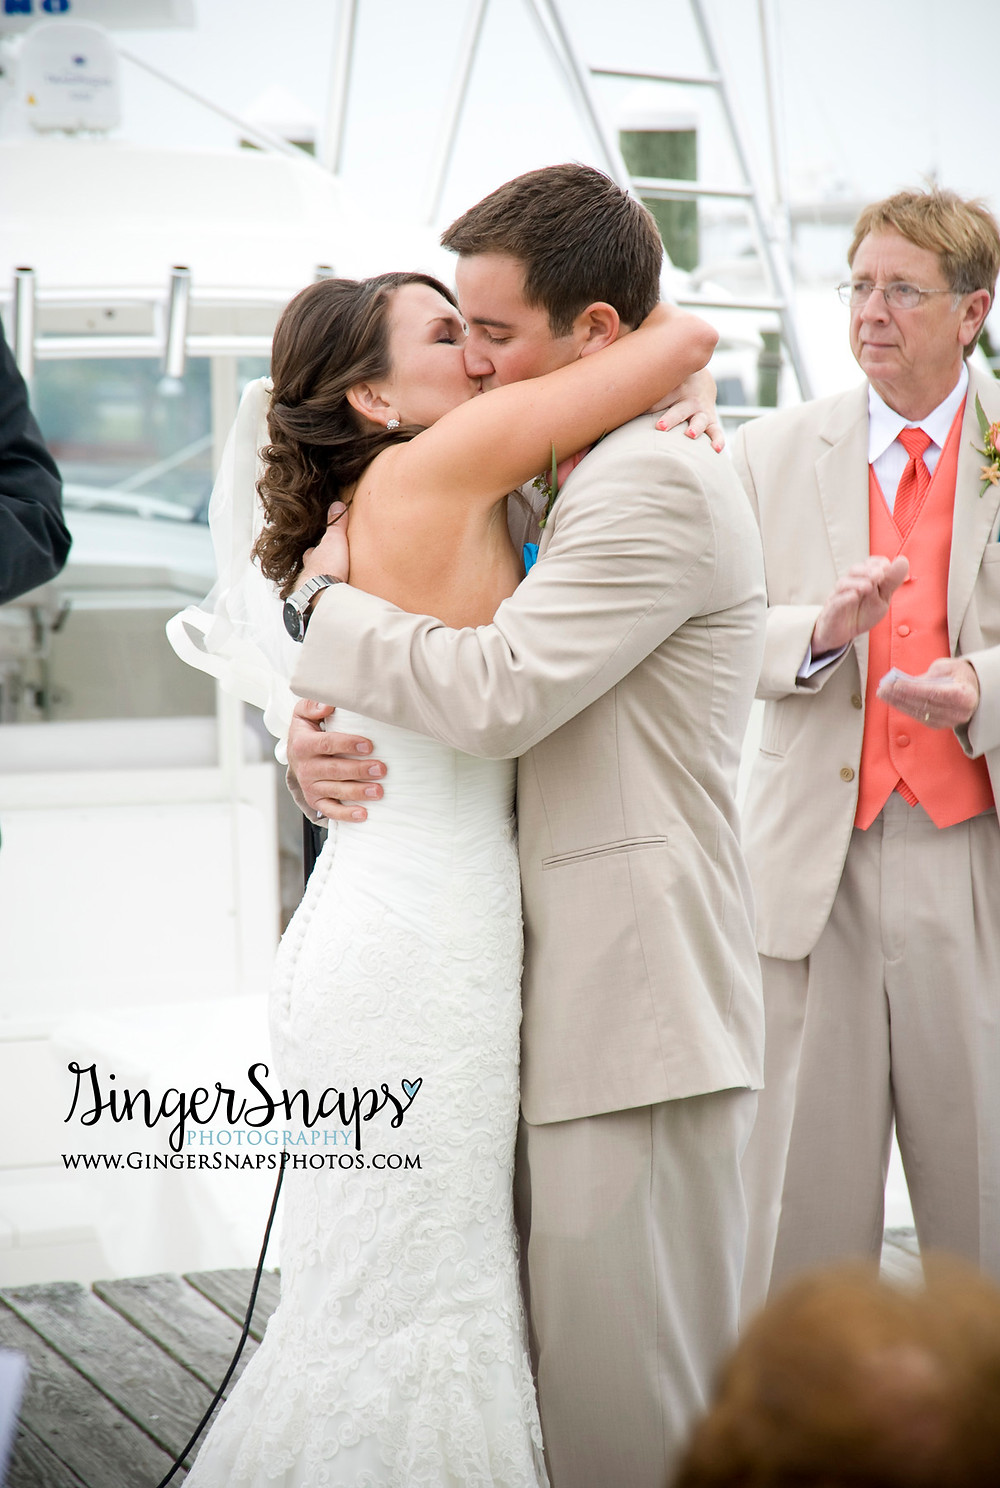 GingerSnaps Photography - 031.jpg